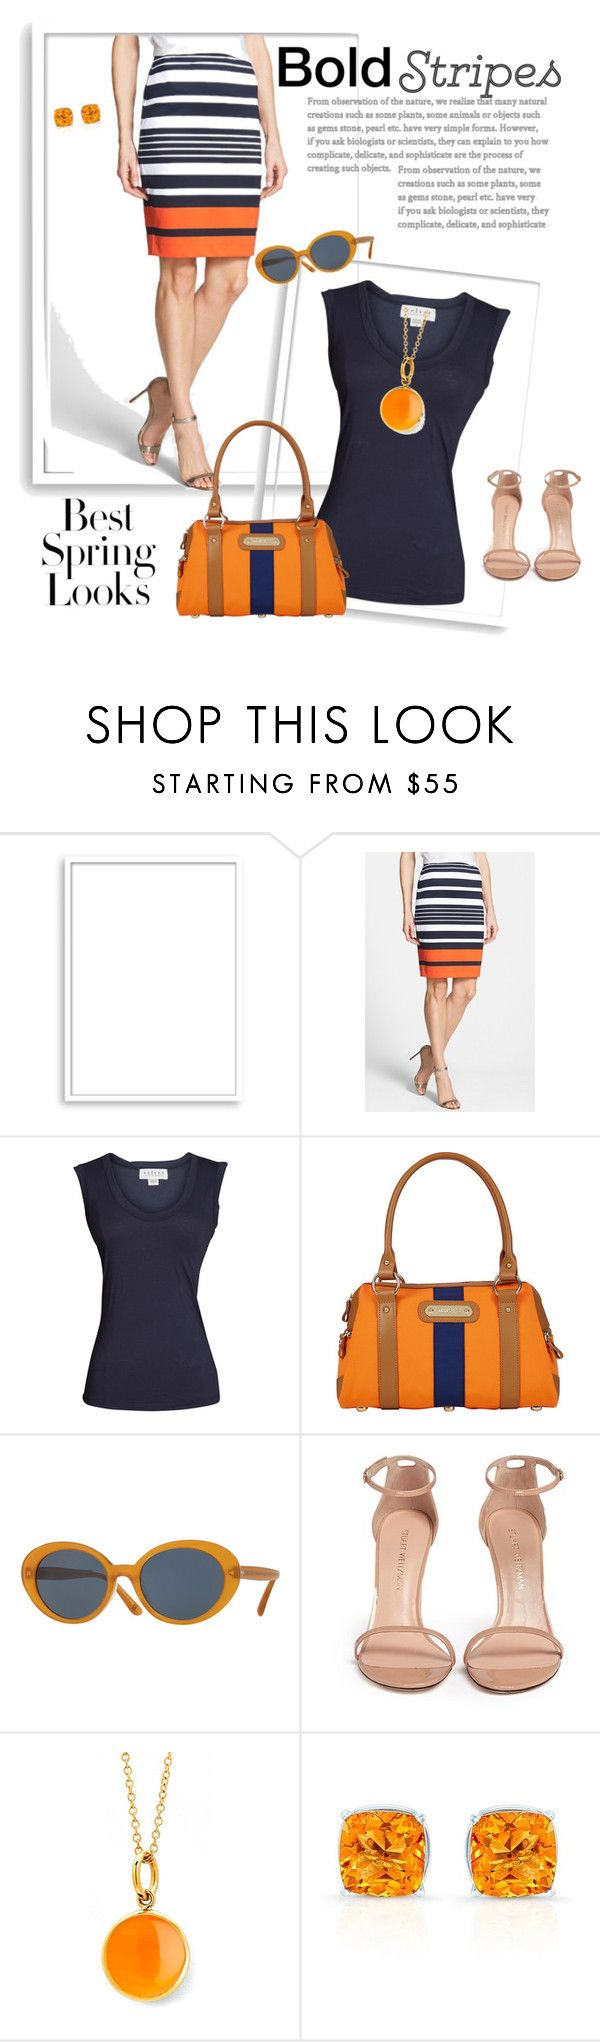 """""""Striped Skirt"""" by melissabradley-1 ❤ liked on Polyvore featuring H&M, Bomedo, MICHAEL Michael Kors, Velvet by Graham & Spencer, Davey's, Oliver Peoples, Stuart Weitzman, Syna, Spring and Blue"""